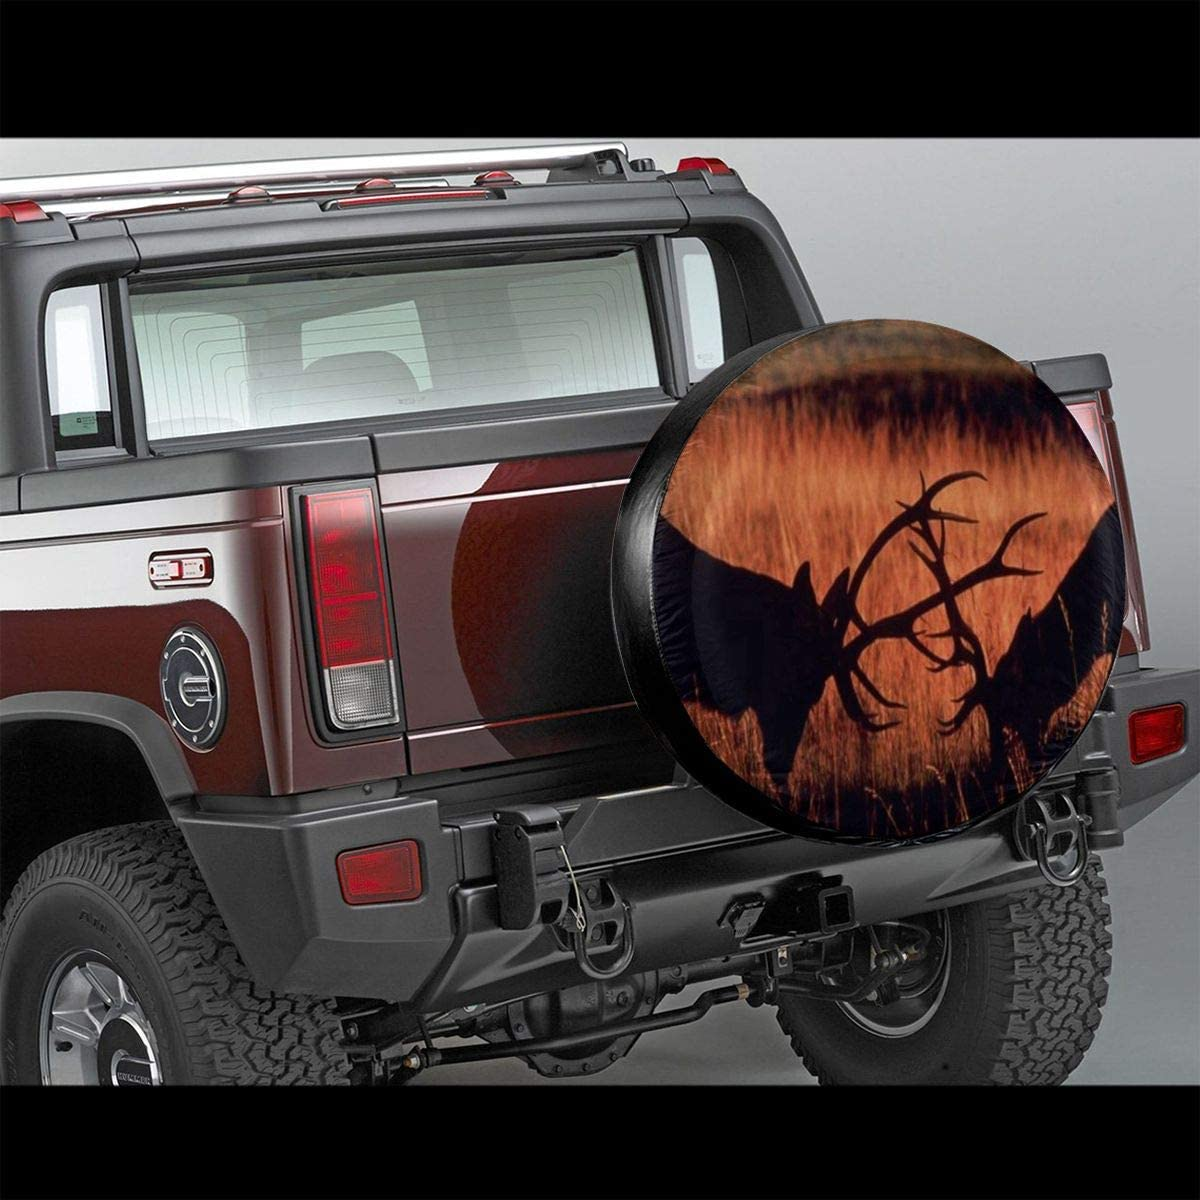 Truck and Many Vehicle Wheel Cover Spare Tire Cover Deer Fight Autumn Camper Rvs Trailer Tire Cover for Jeep SUV RV Trailer